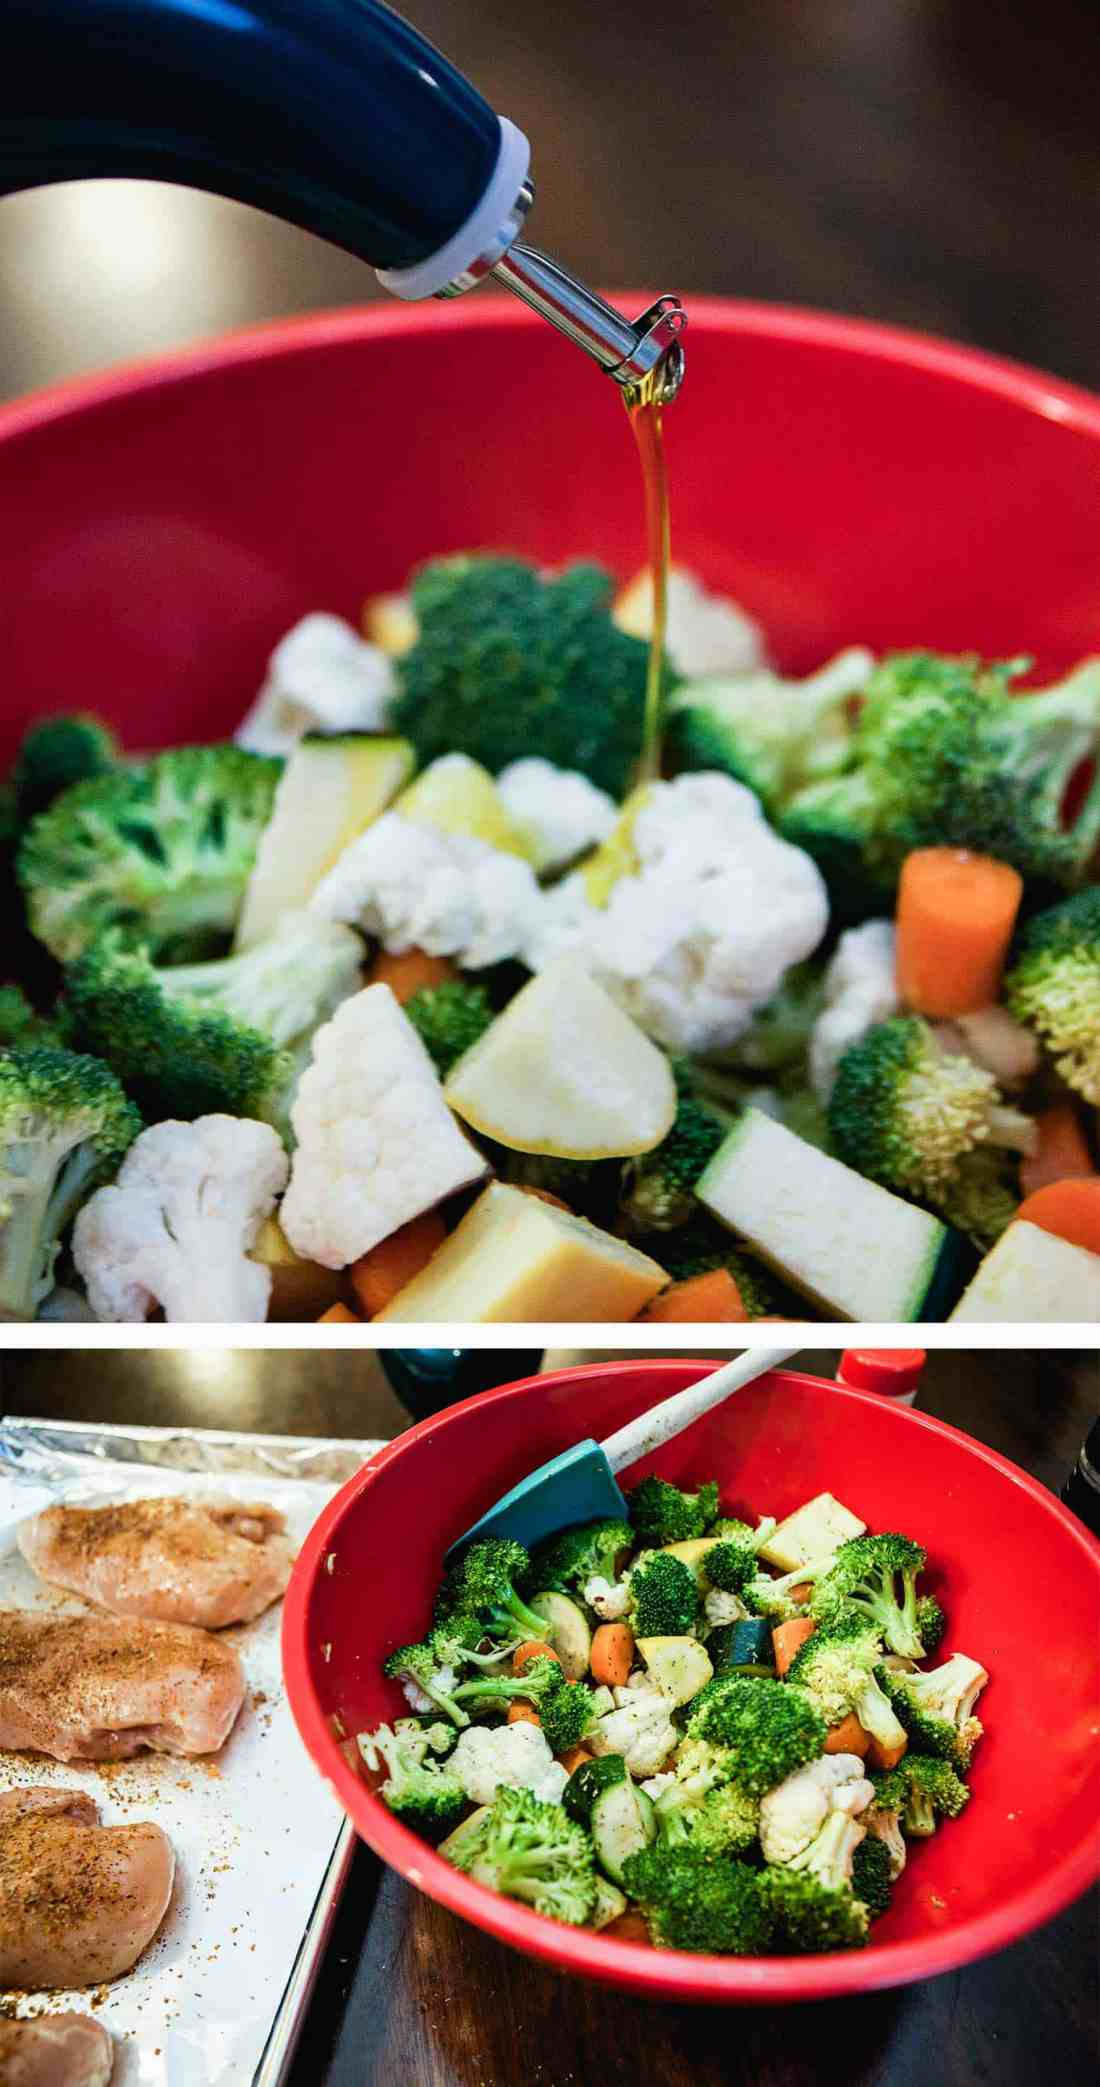 adding oil and seasoning to veggies in red bowl